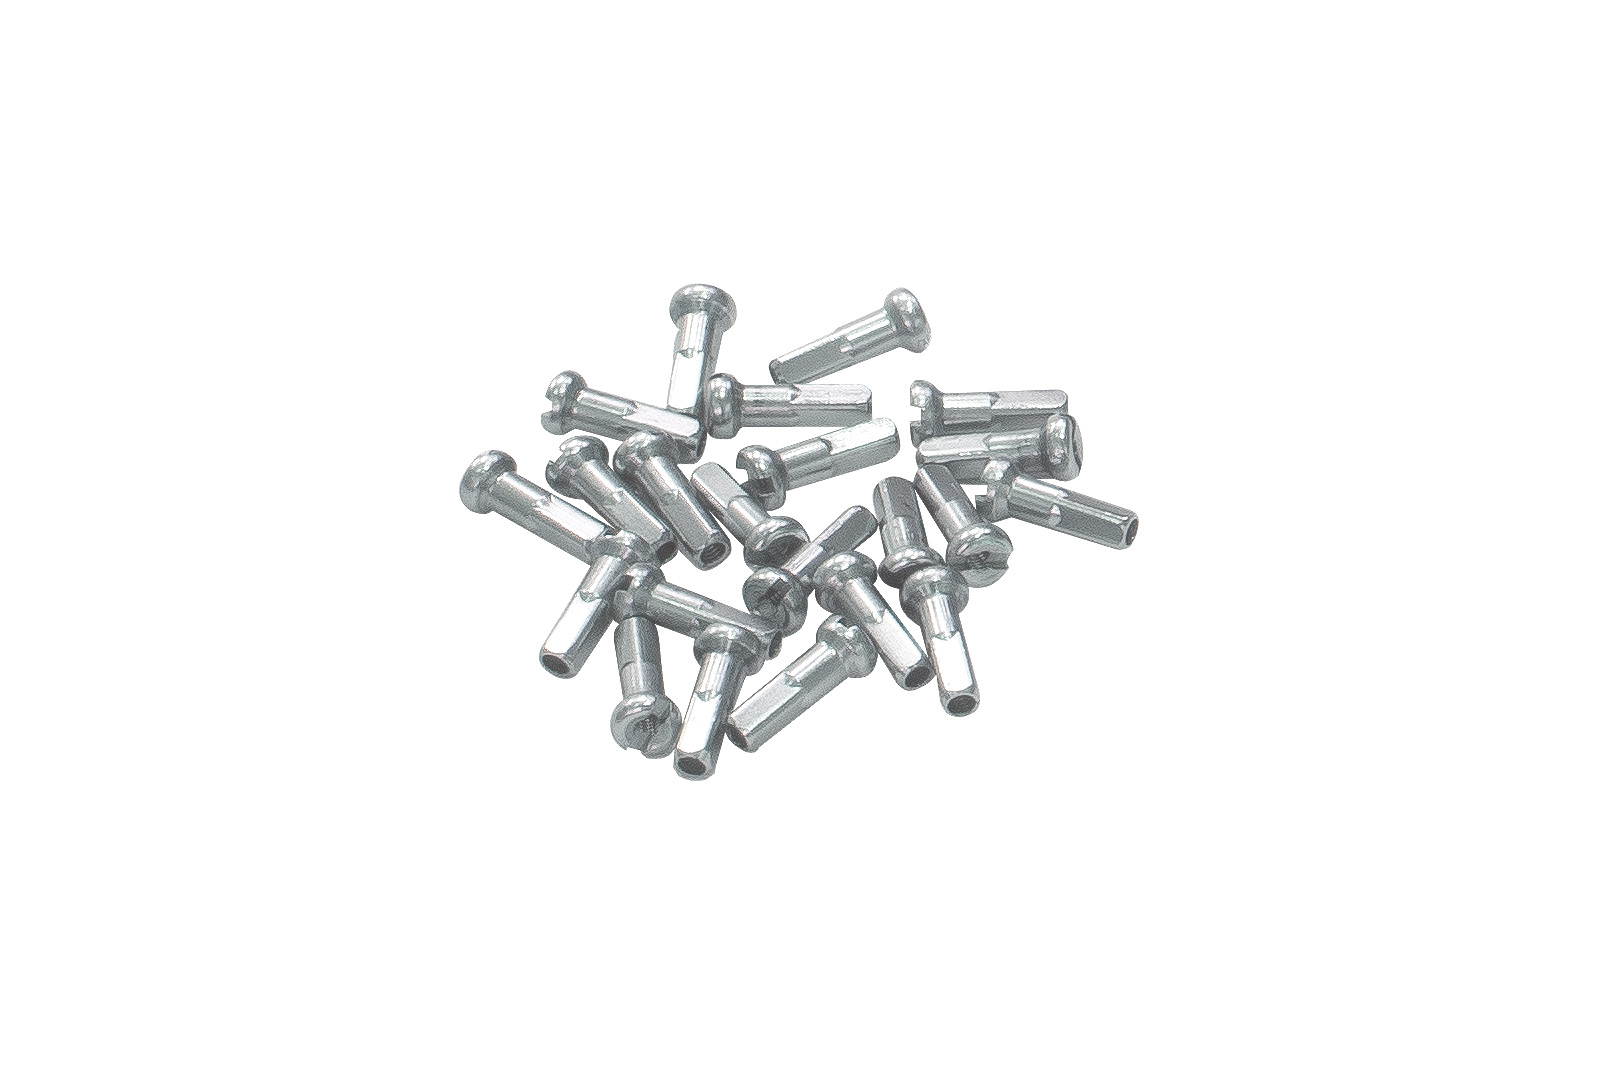 Matice paprsku (niple) KLS 2x14 mm